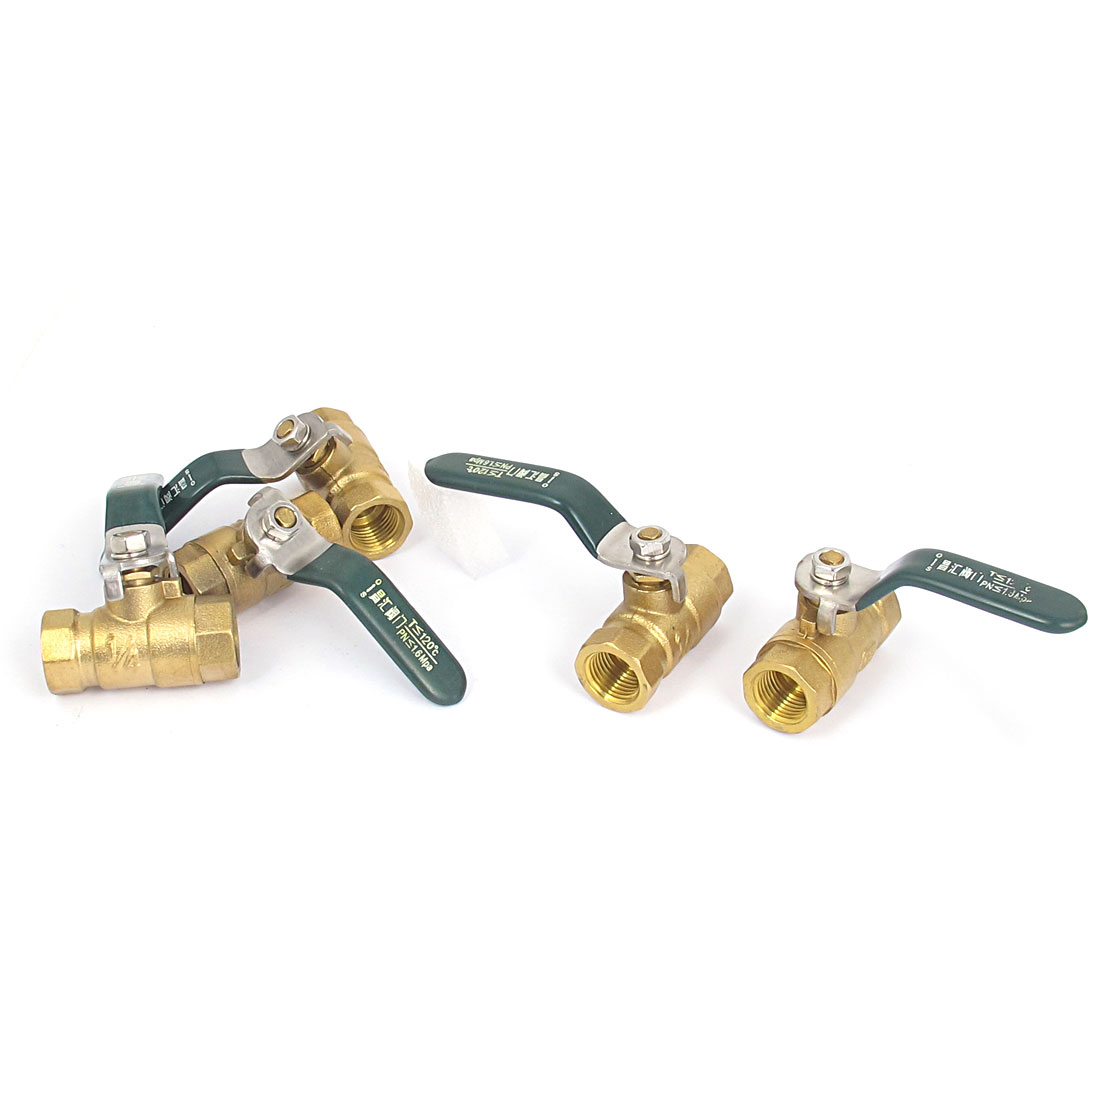 1/4BSP to 1/4BSP Female Outlet 180 Degree Rotary Lever Handle Metal Air Ball Valve Controller 5pcs